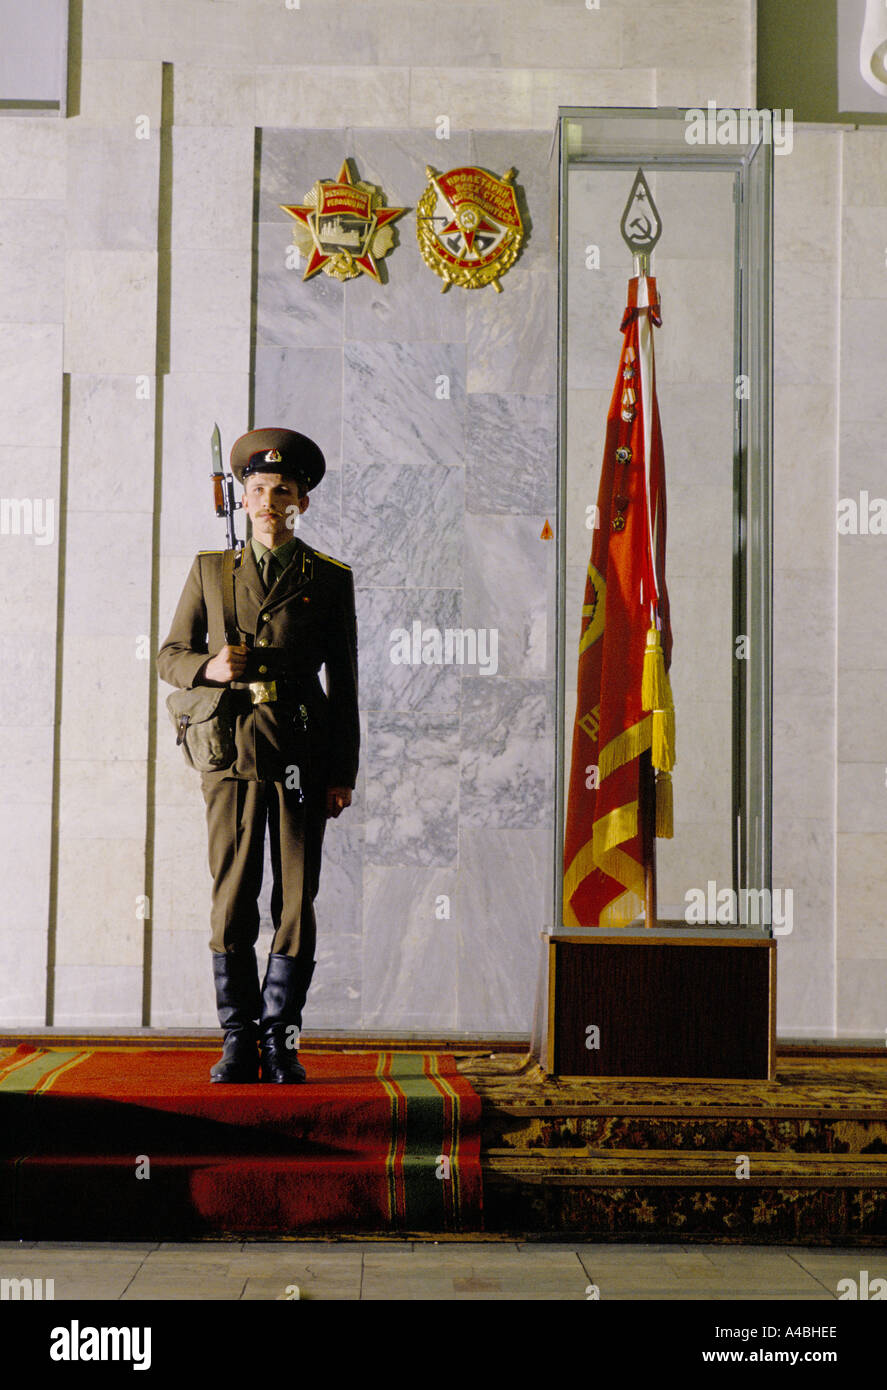 A soldier stands guard at the KGB's training school beside the college's flag, Moscow, Russia, USSR, 1990 - Stock Image